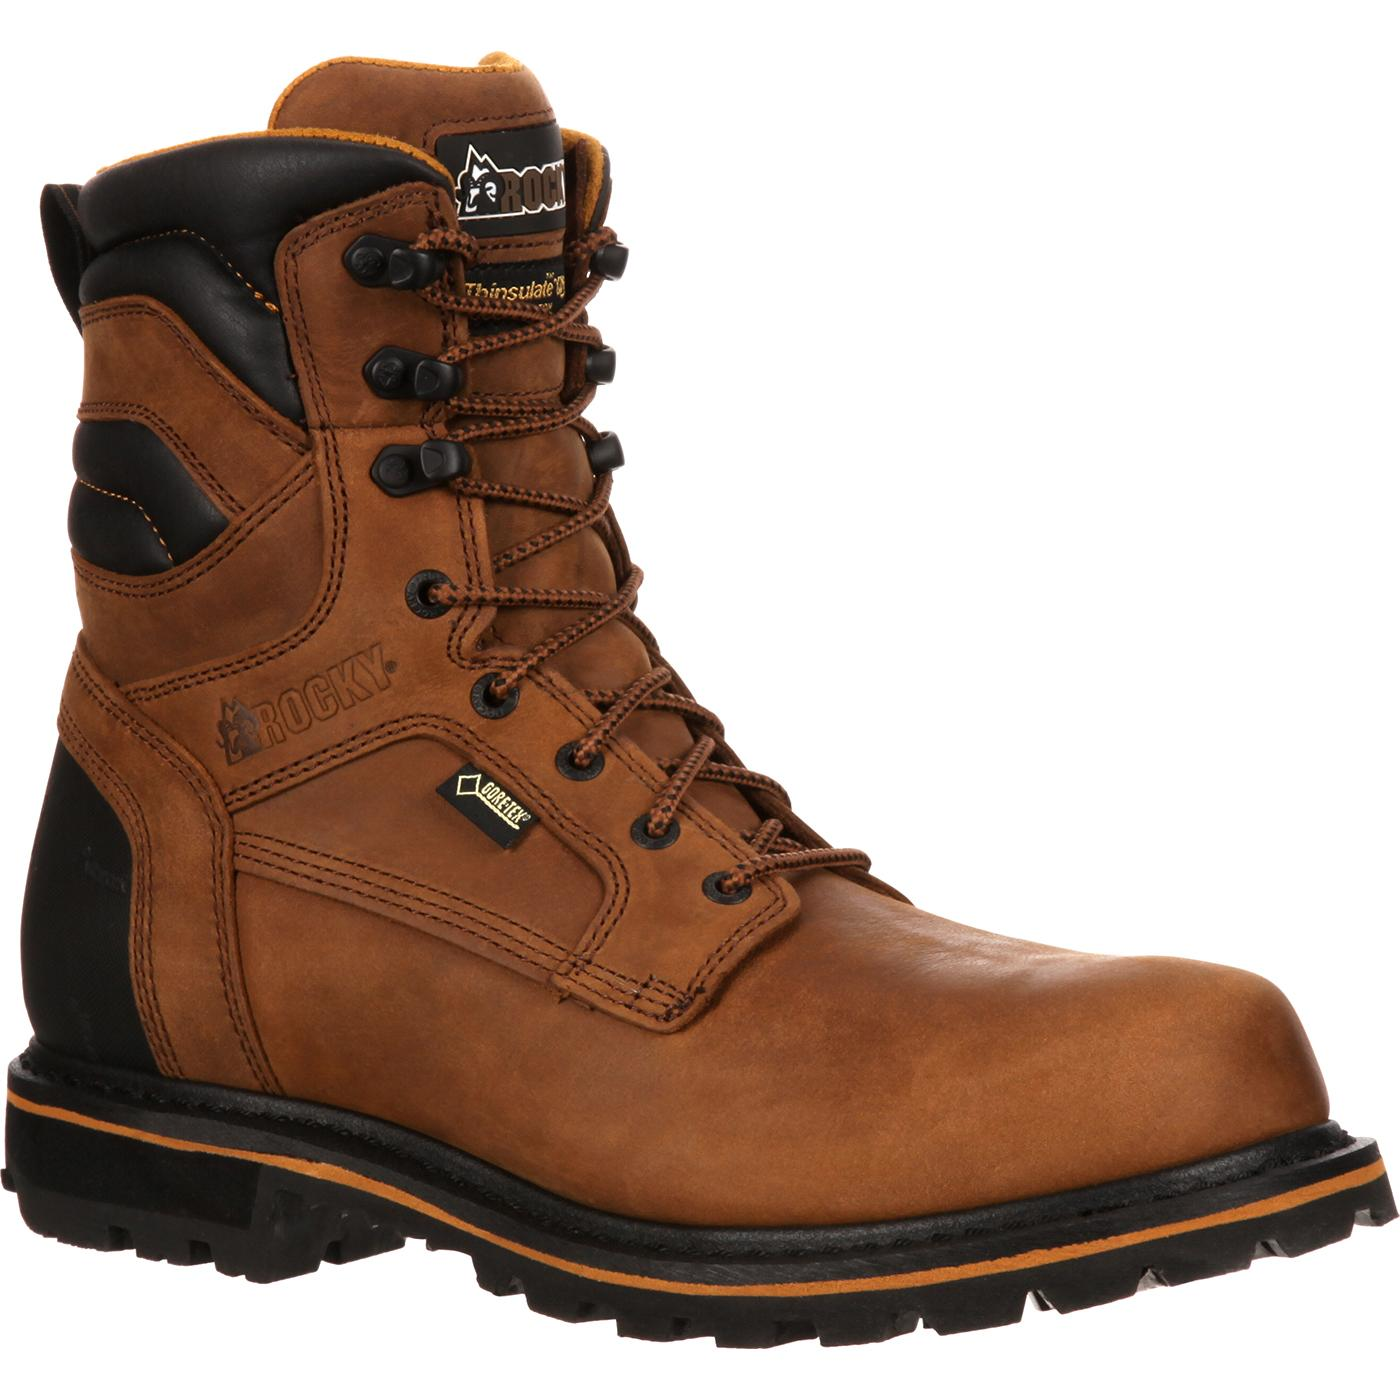 Rocky Governor Gore Tex 174 Insulated Work Boots Rkyk060